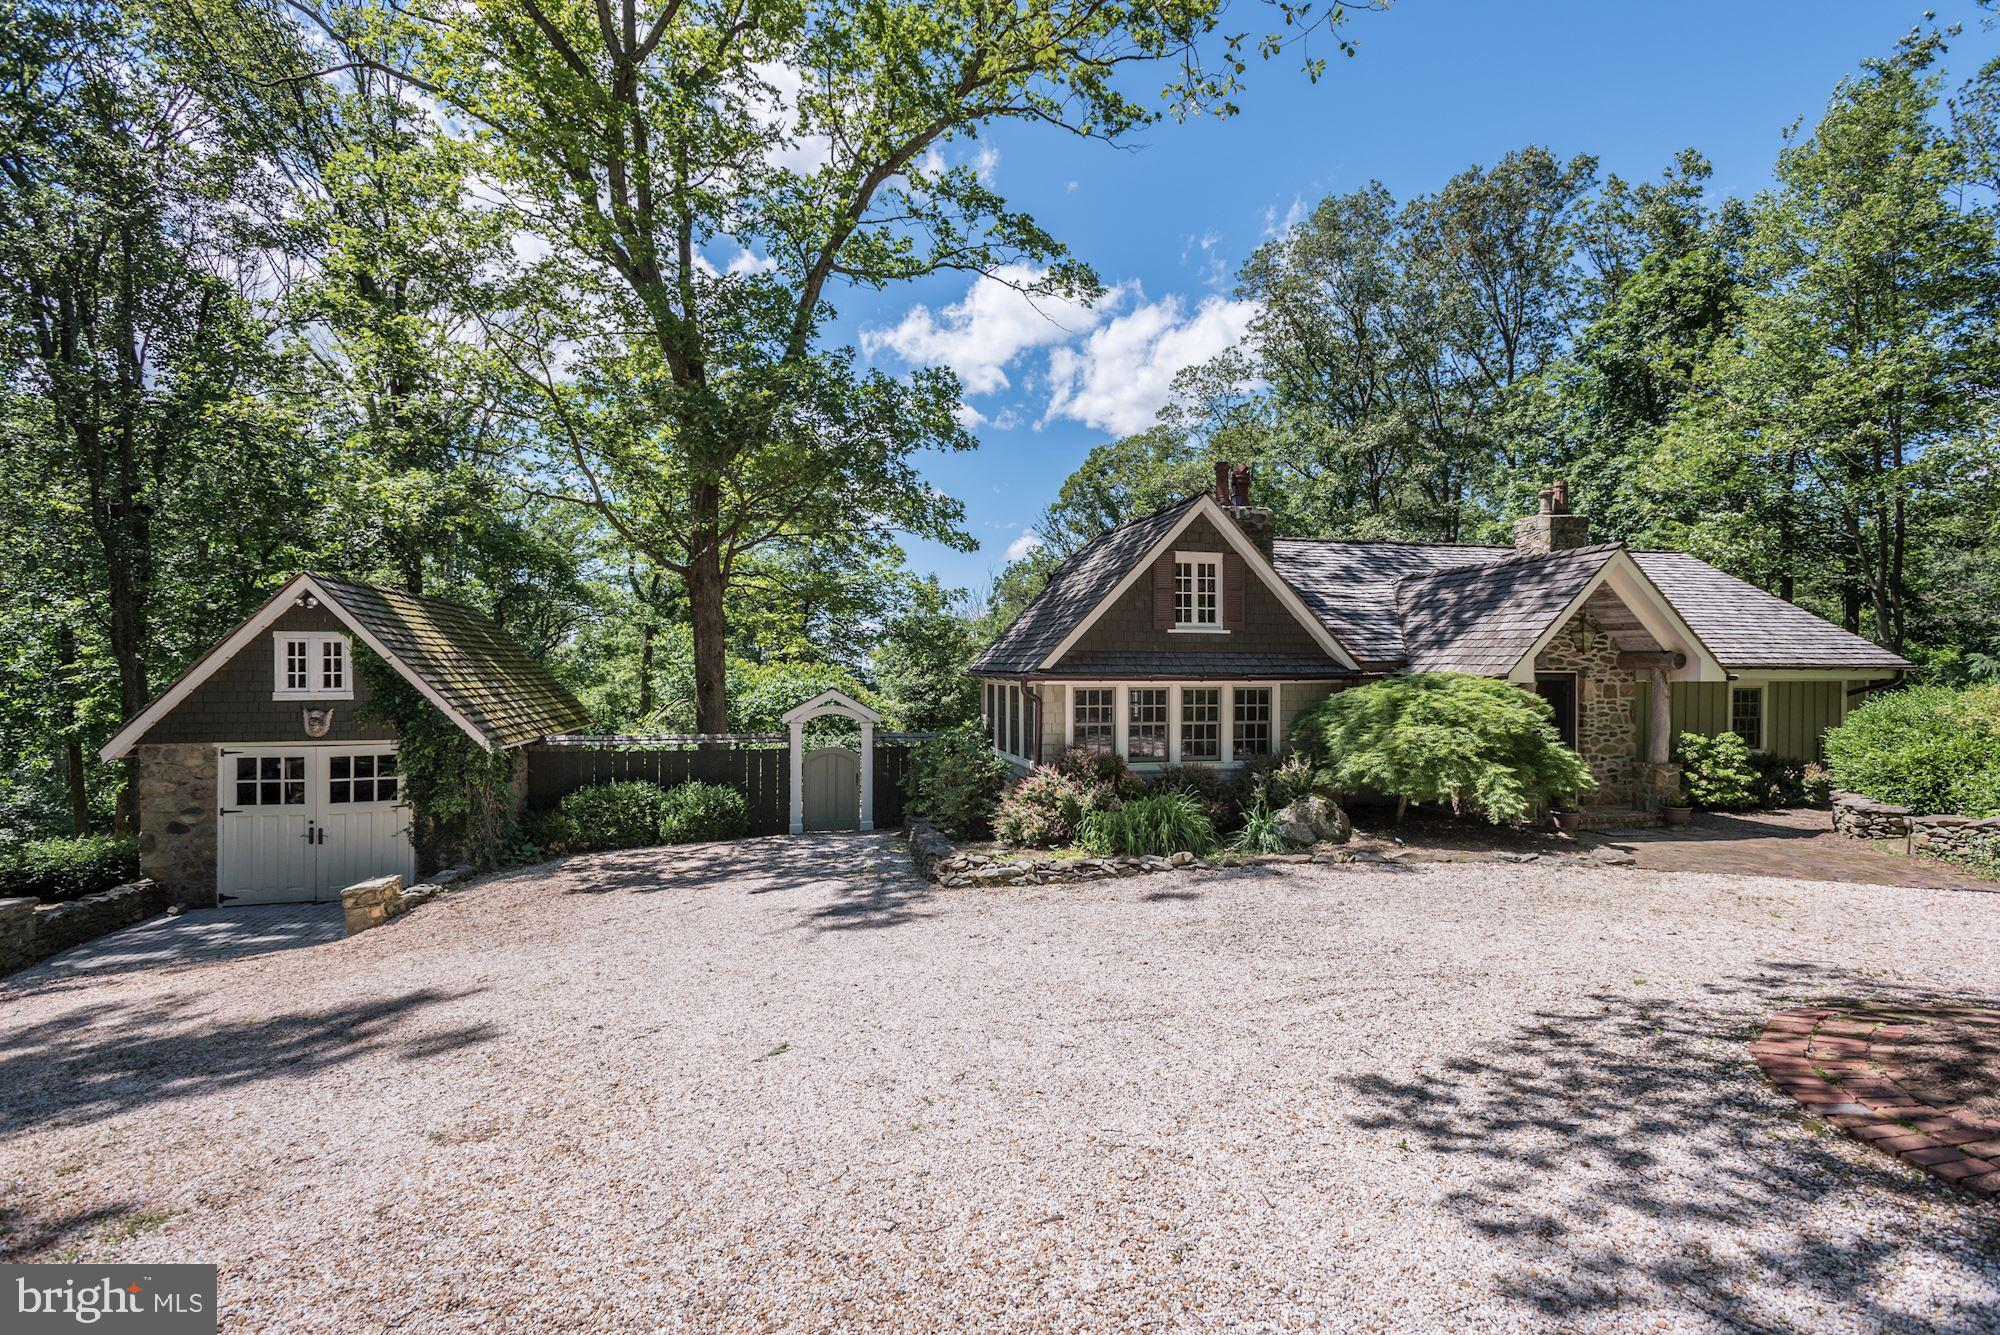 Enchanting mountain lodge with breathtaking views. Surrounded by boxwoods, towering oak trees, numer